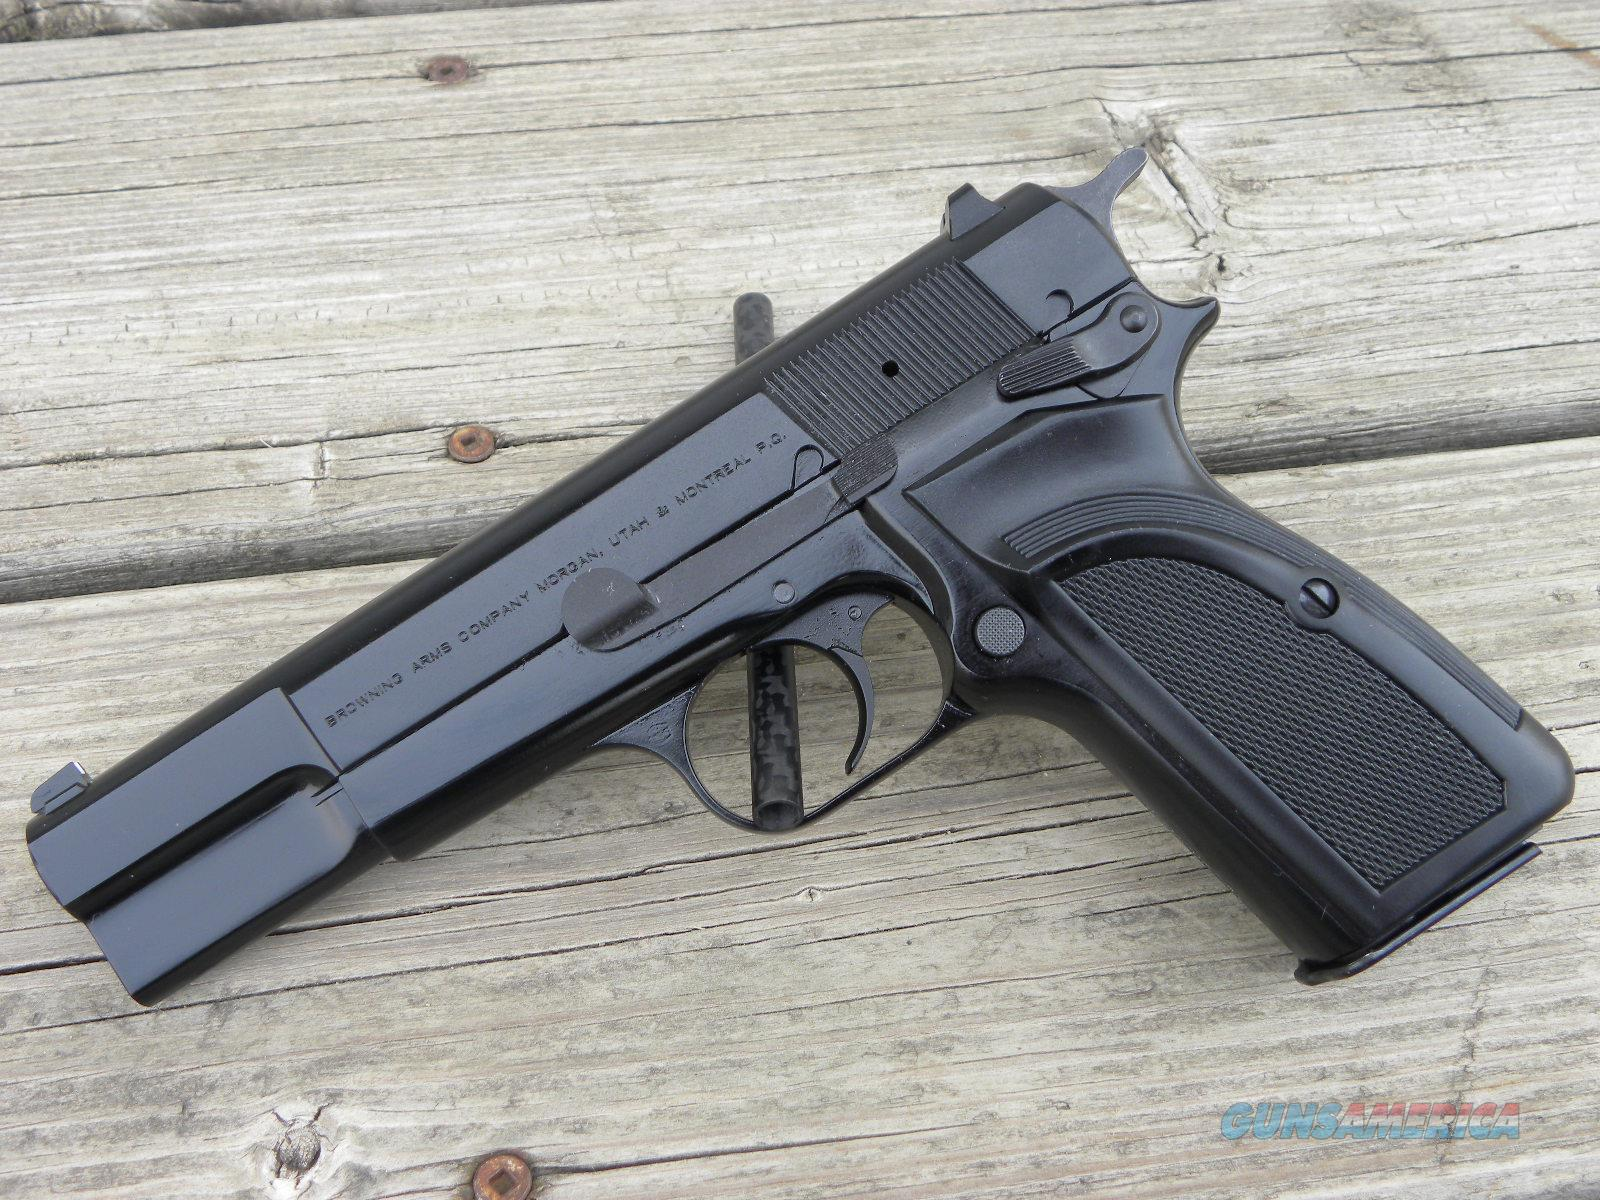 Browning Hi Power Mkiii 13 1 051002393 9mm For Sale